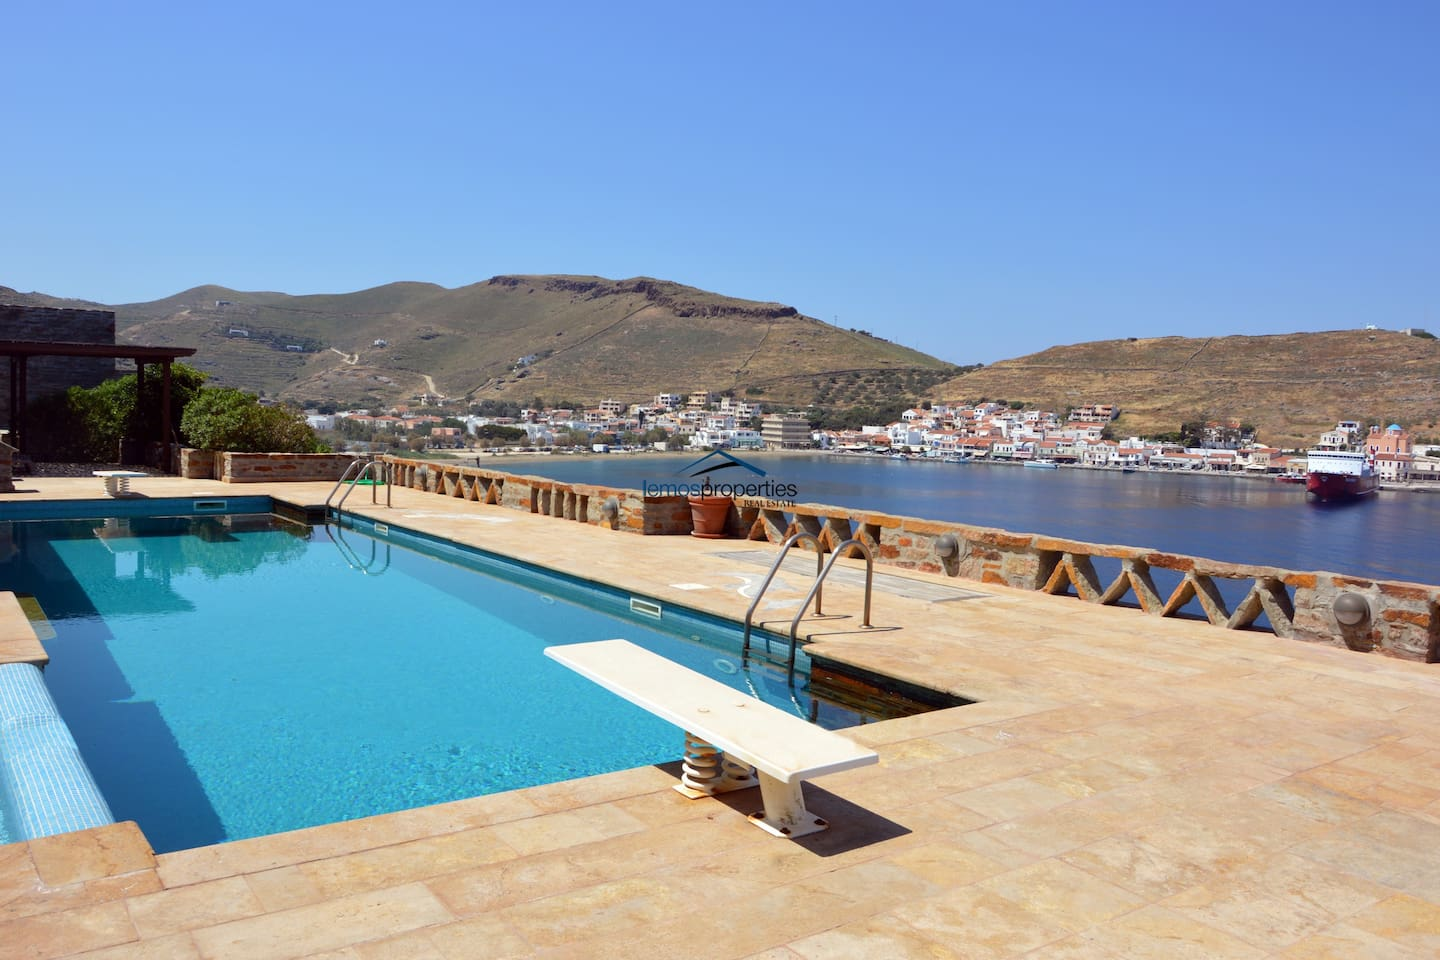 Part of the view from the pool area